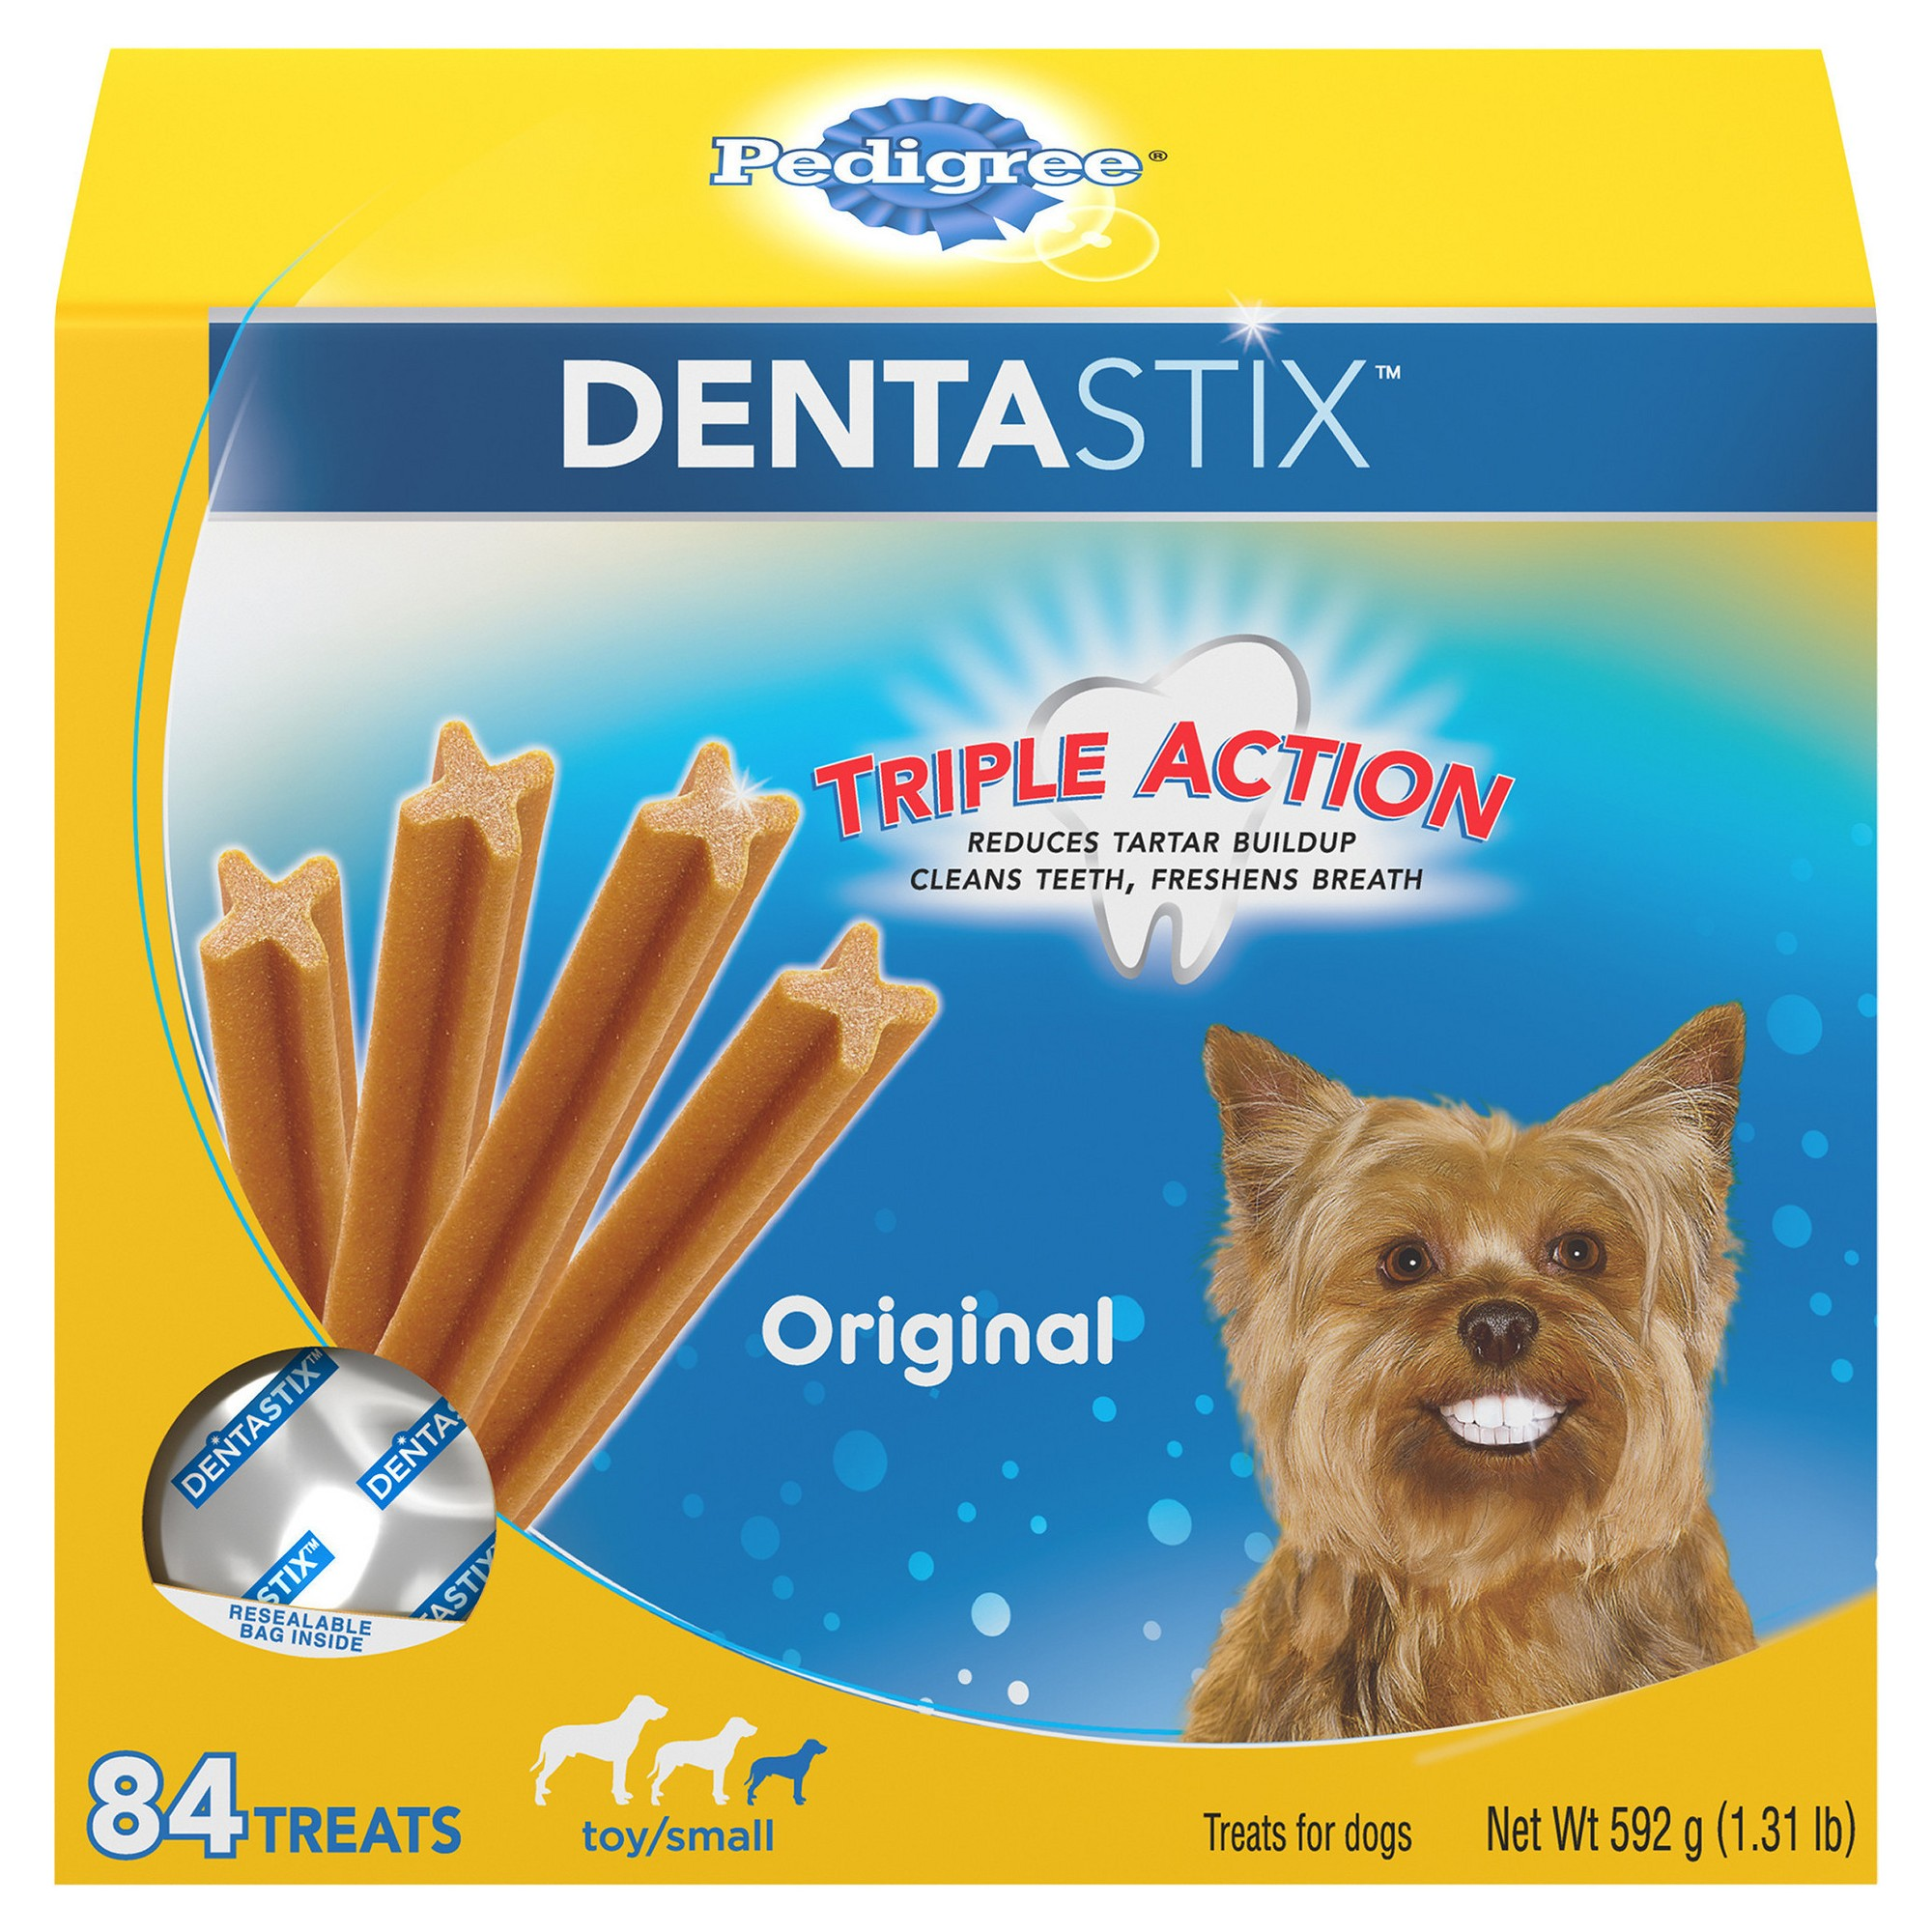 Pedigree Dentastix Original Toy Small Treats For Dogs Value Pack